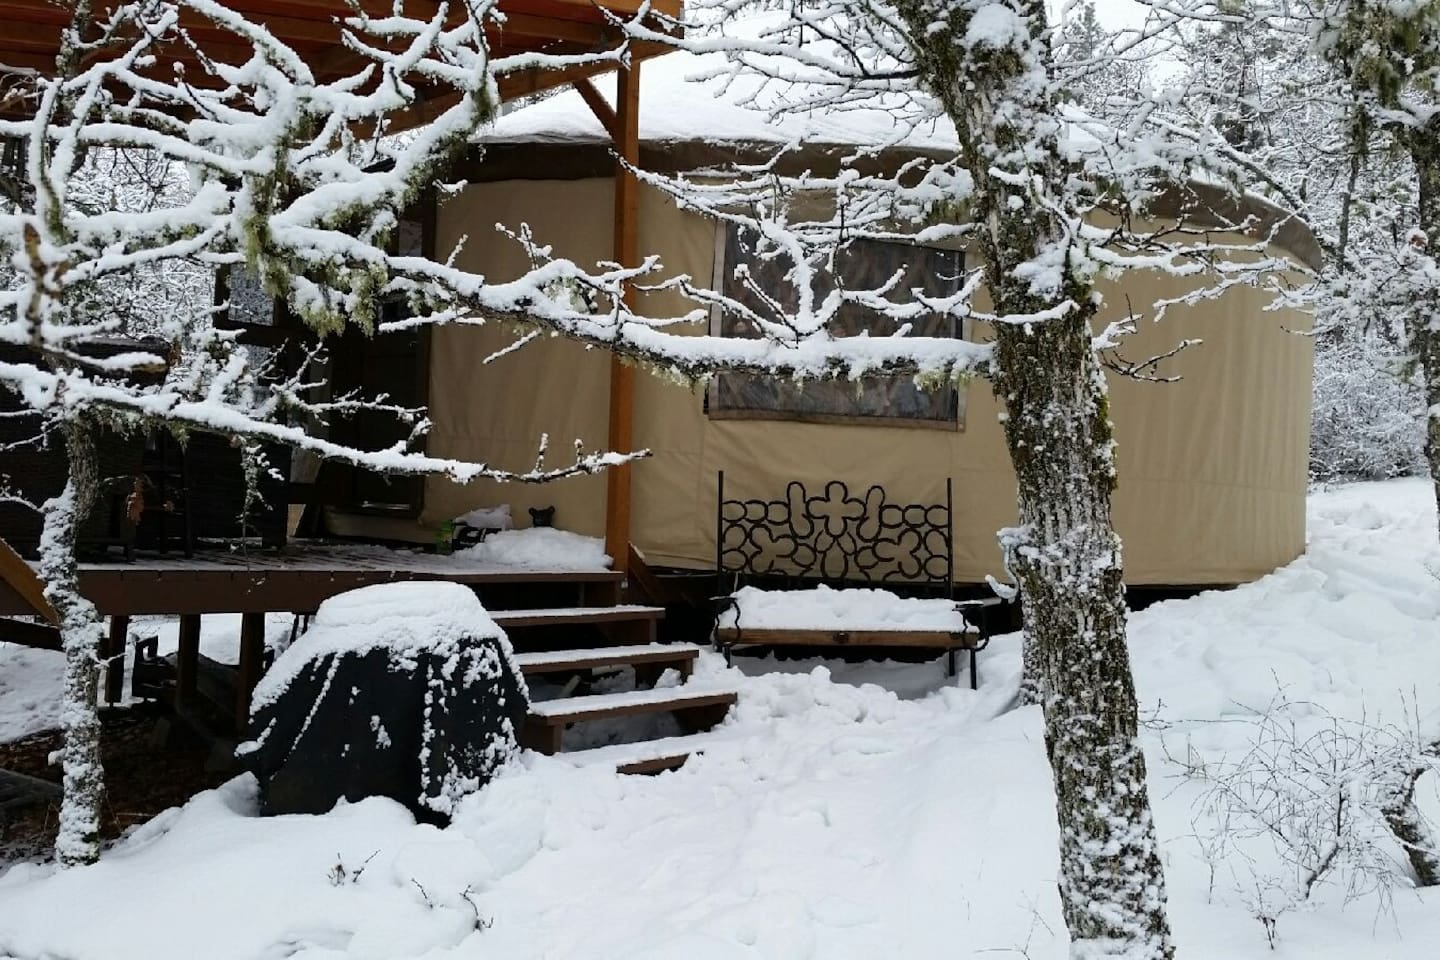 Elevation is only 2,000 ft., but we love the occasional snow. If it's winter, Buck Lane is always cleared for guests.